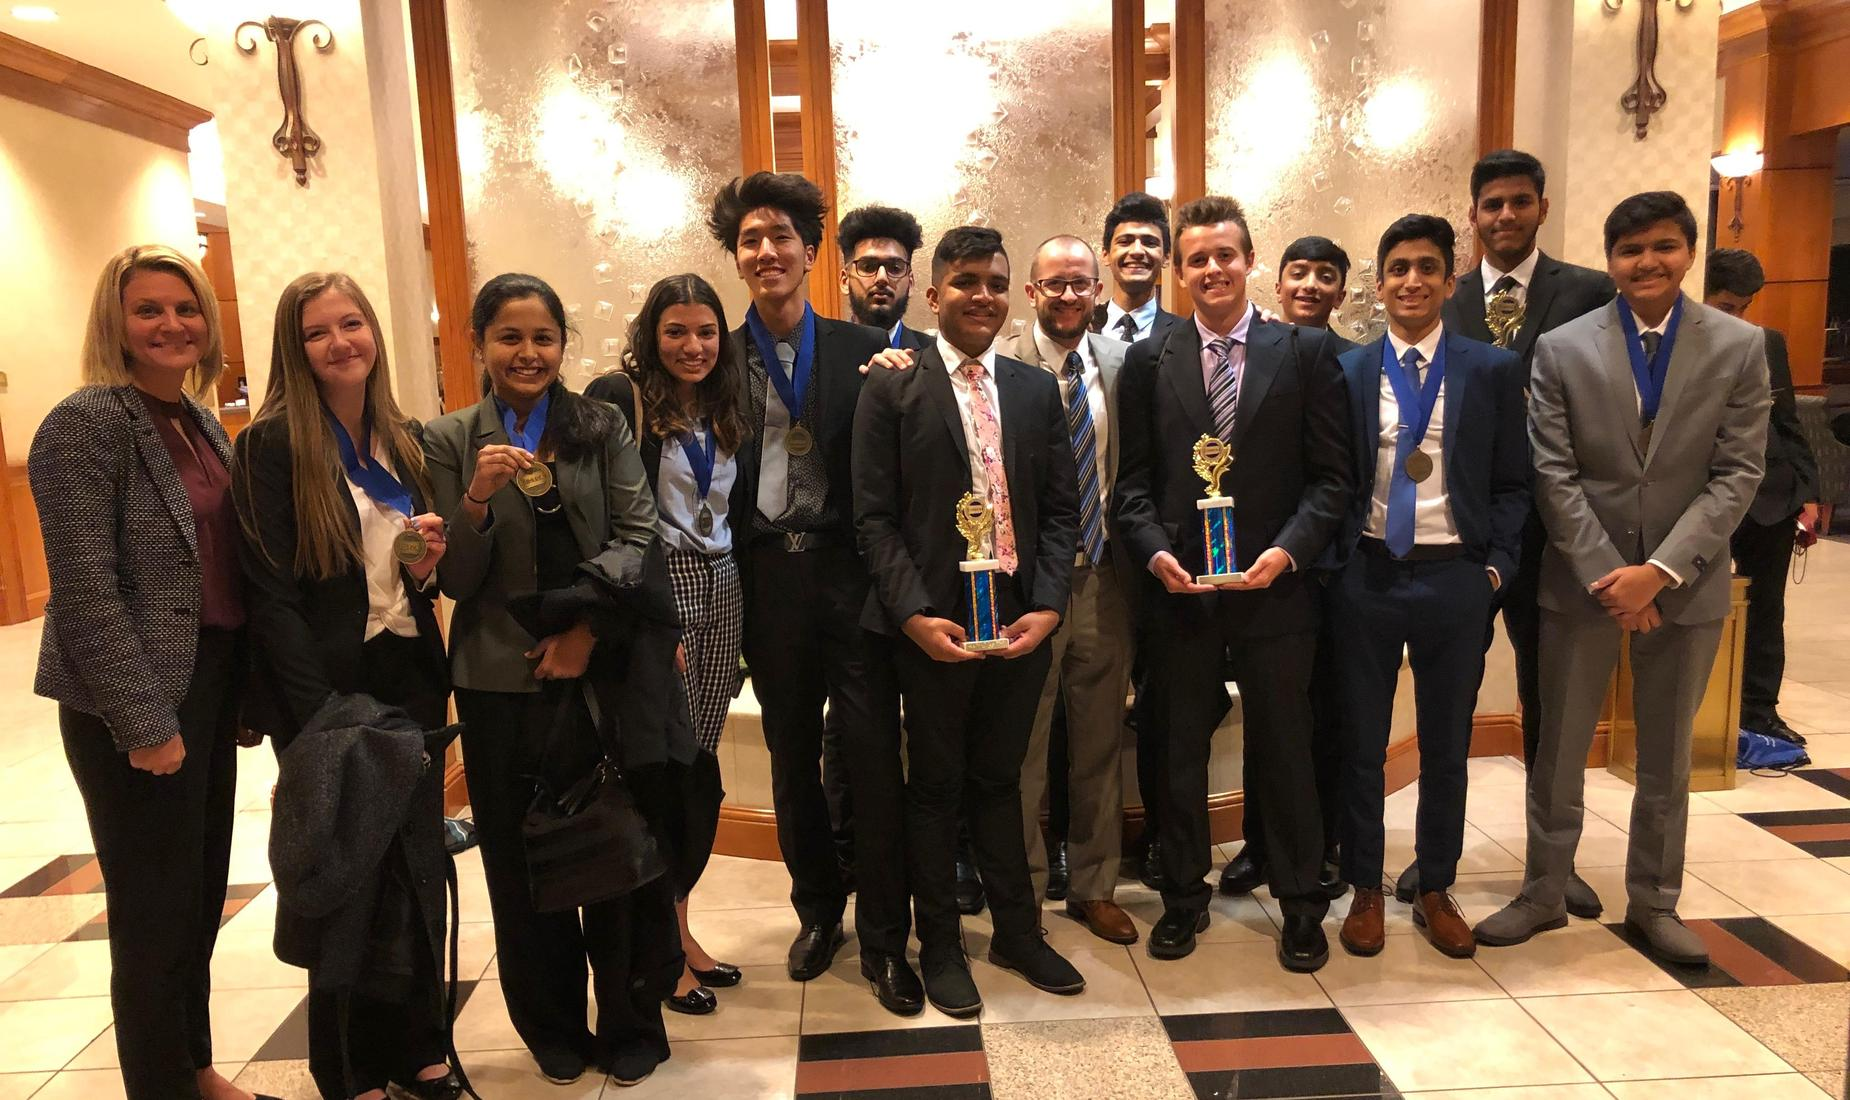 12 DECA students, 9 boys and 3 girls, holding trophies they won at the District DECA competition.